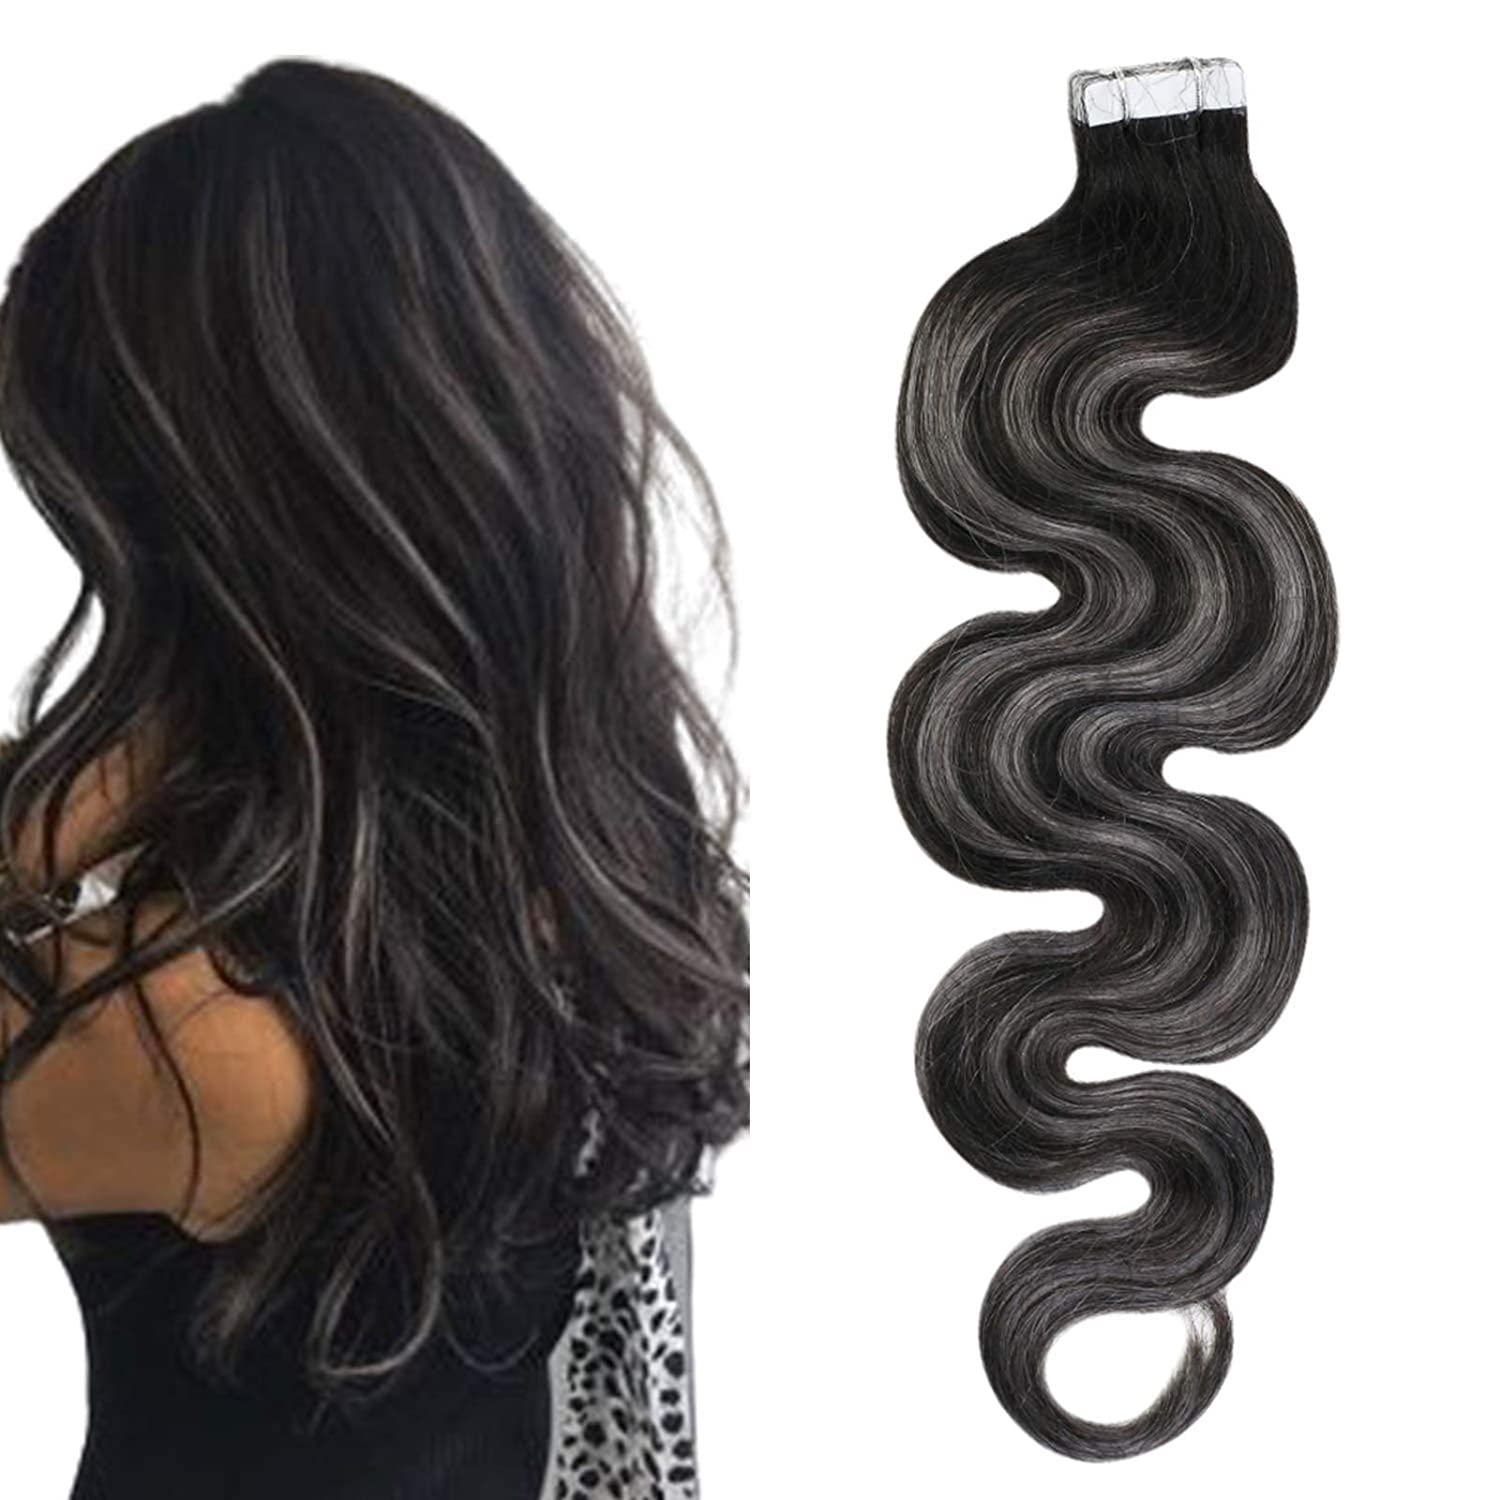 Ugeat Tape in Human Hair Extensions 12 Inch Body Wave Tape in Skin Weft Hair Extensions 20PCS 30Gram Balayage Tape in Extensions Real Remy Hair #1B Off Black Fading to Silver with #1B